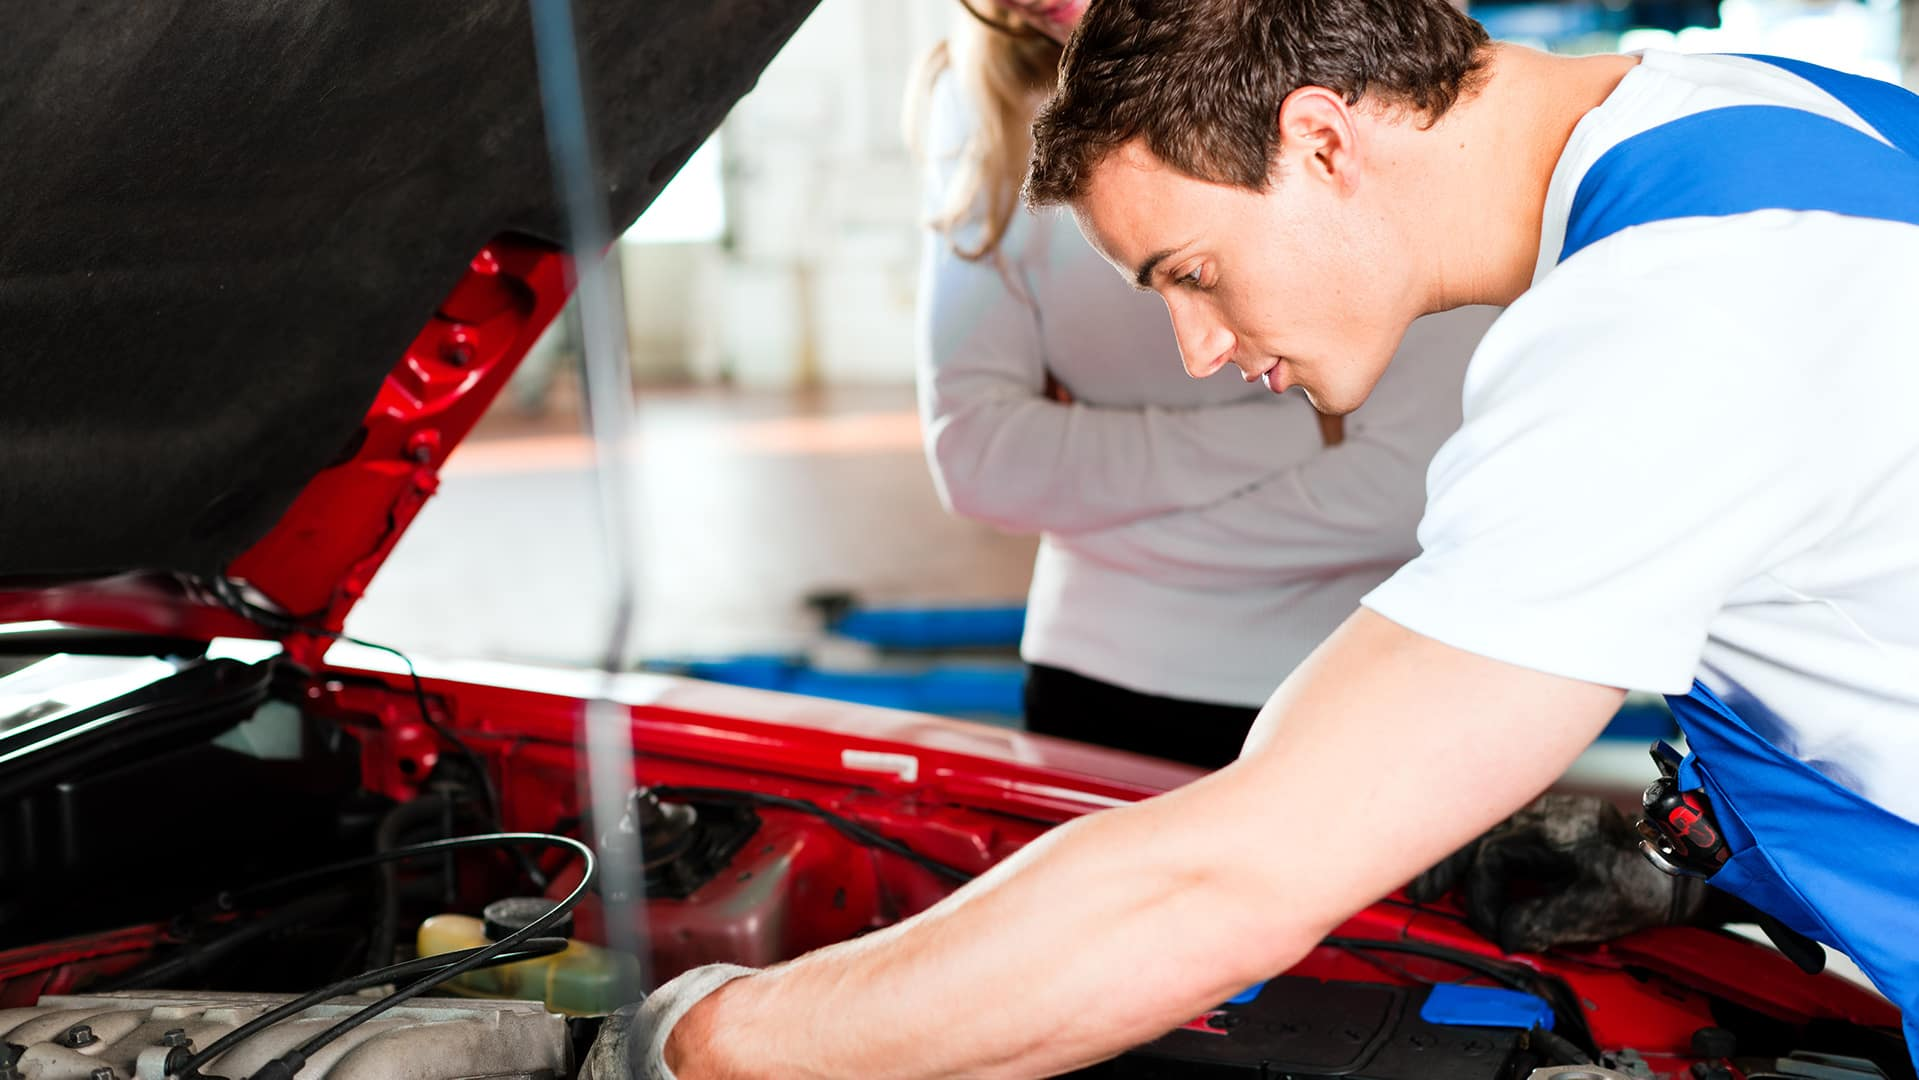 Oil Changes at Boch Nissan in Norwood MA | Mechanic Checking Engine